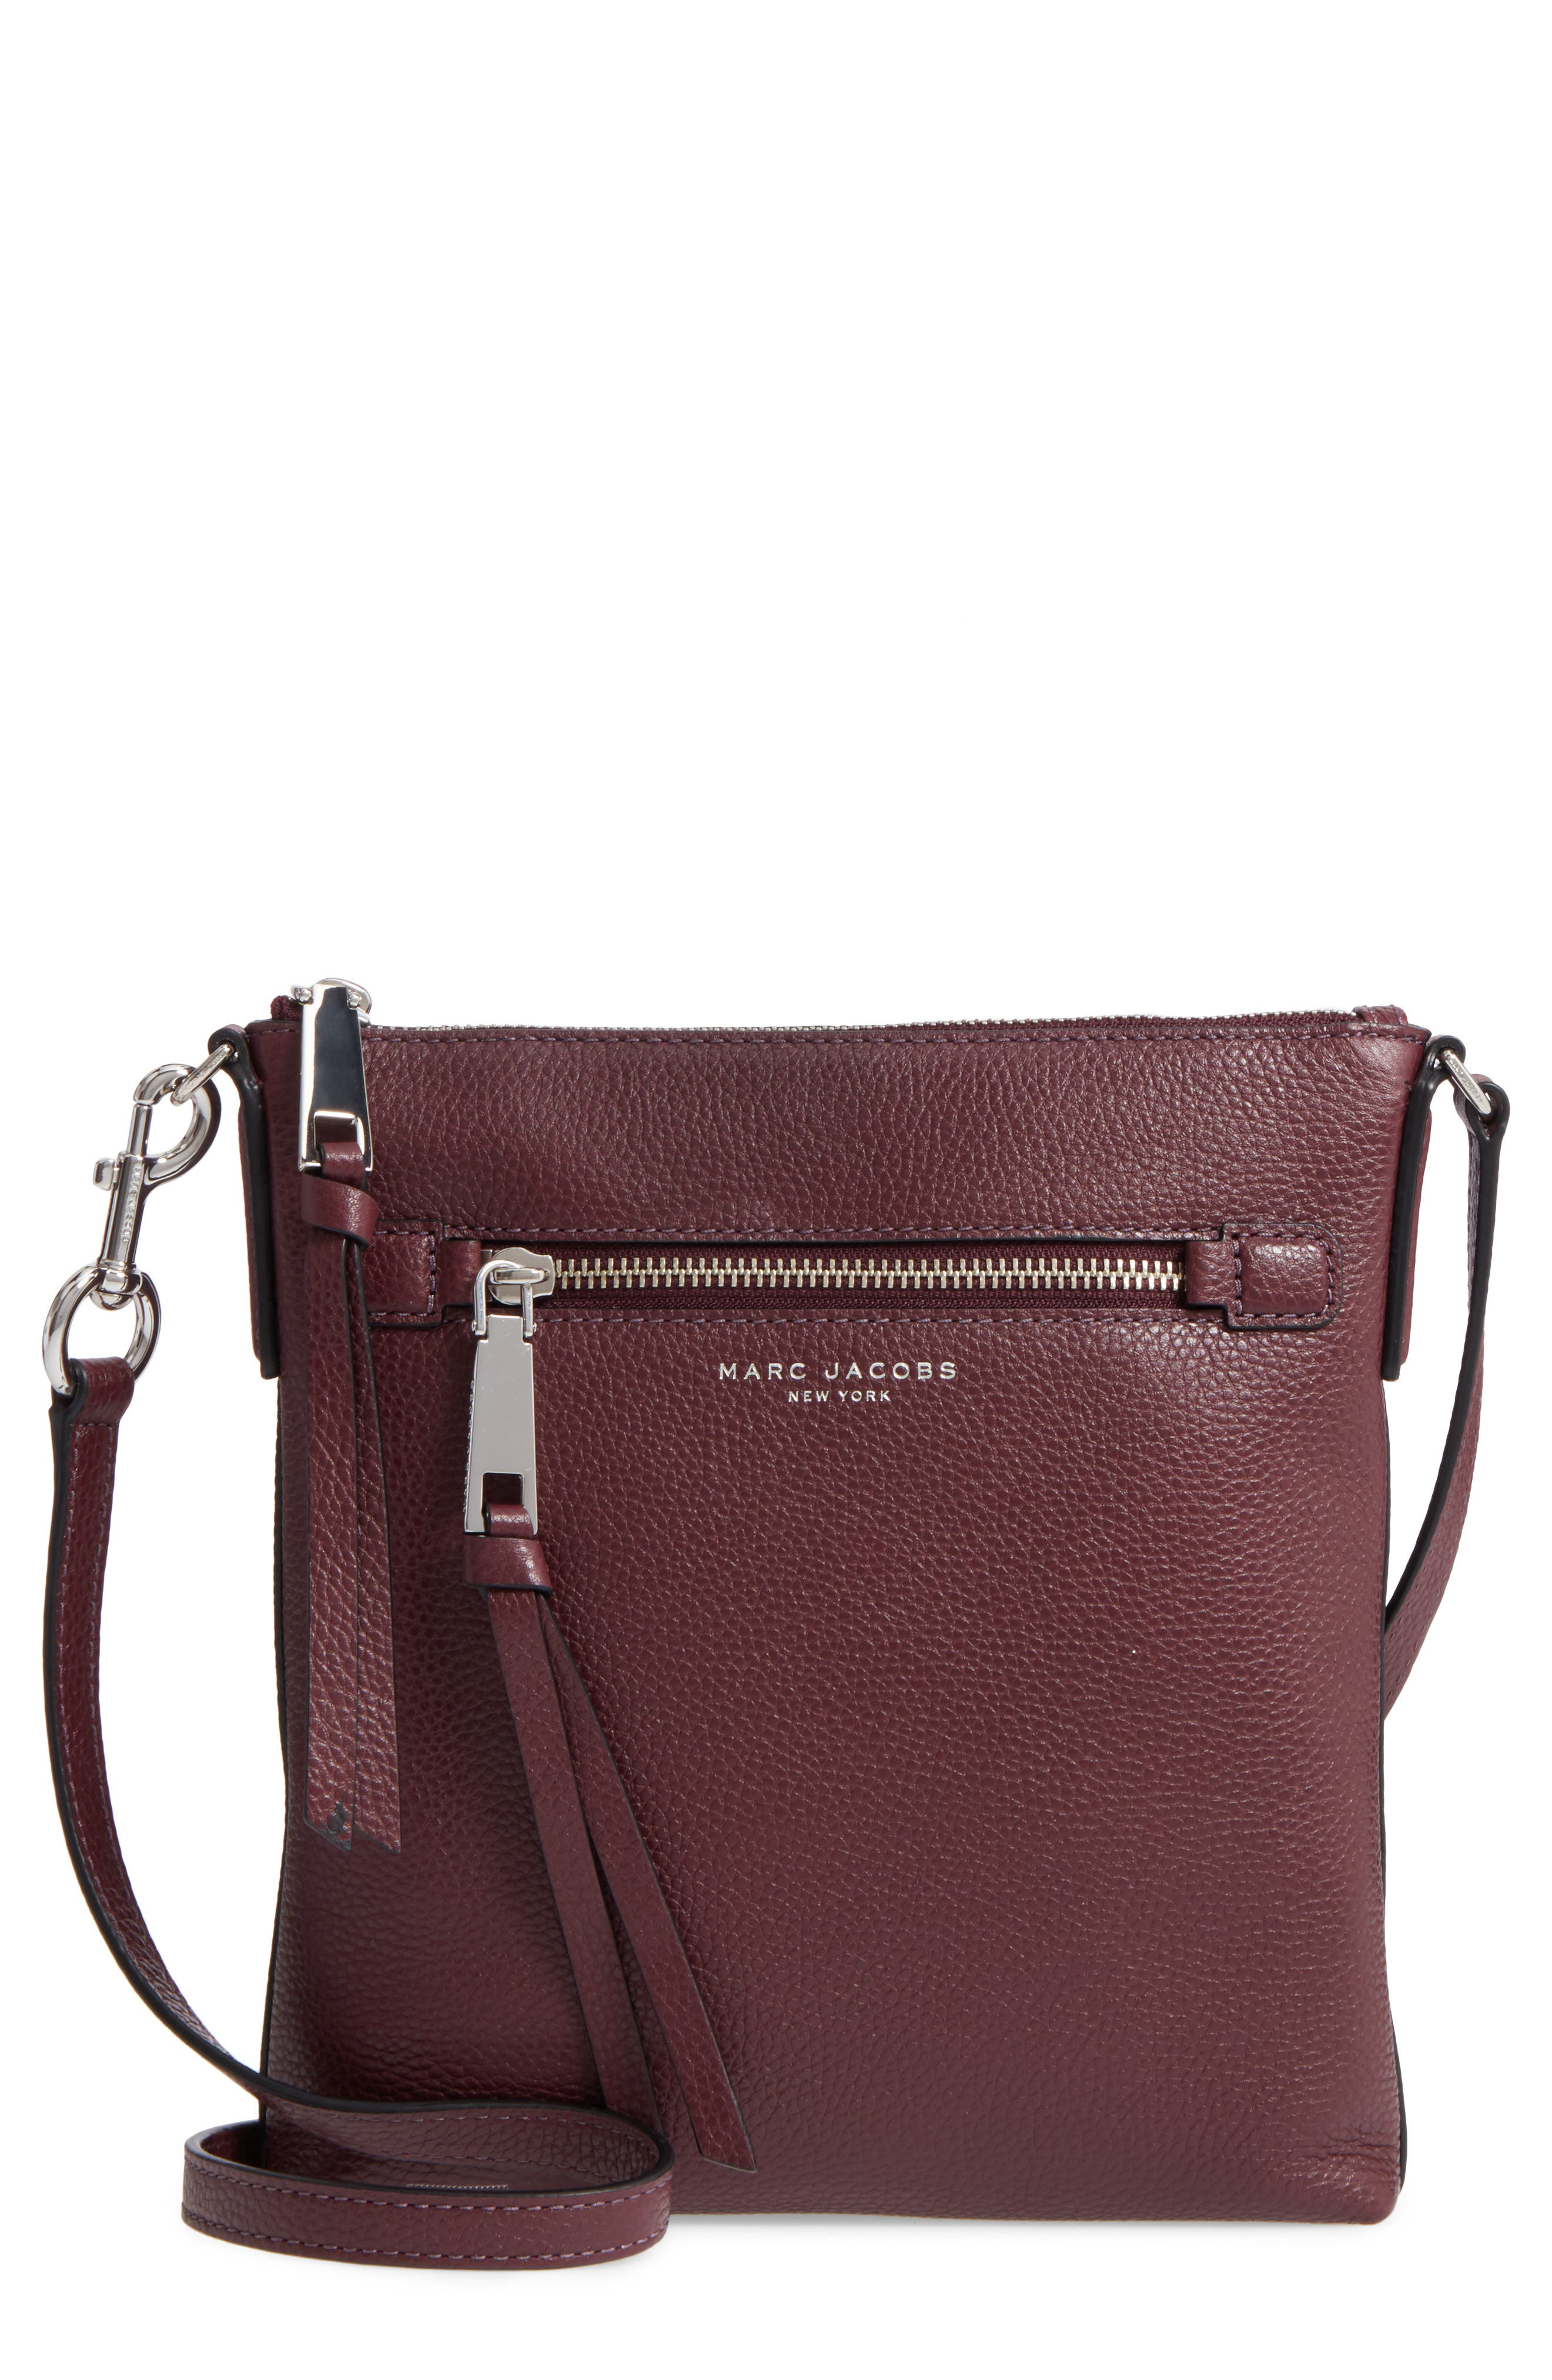 MARC JACOBS Recruit North/South Leather Crossbody Bag